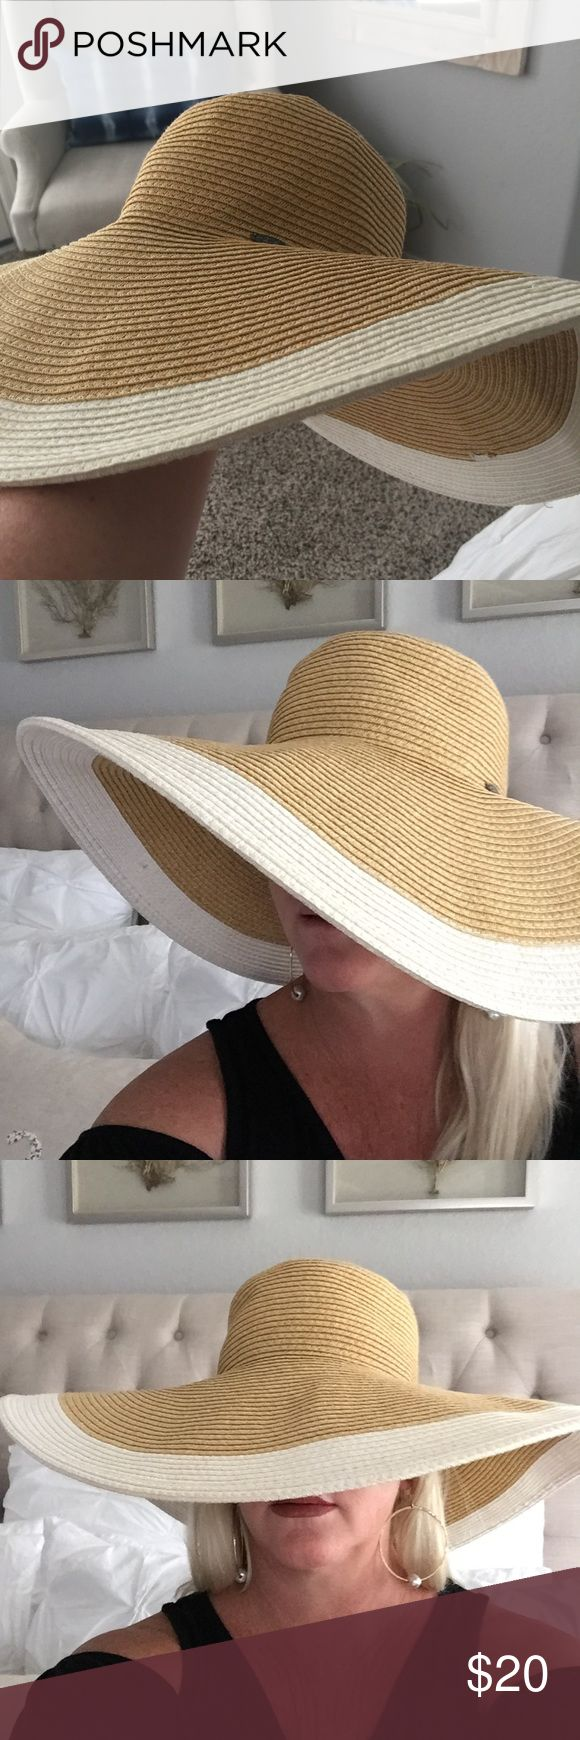 Papillon floppy Sun Hat Floppy Sun Hat.  Perfect for those sunny days by the pool or beach.  This hat has great coverage!  Little bit of make up inside forehead band but other than that it's in good shape. papillon Accessories Hats